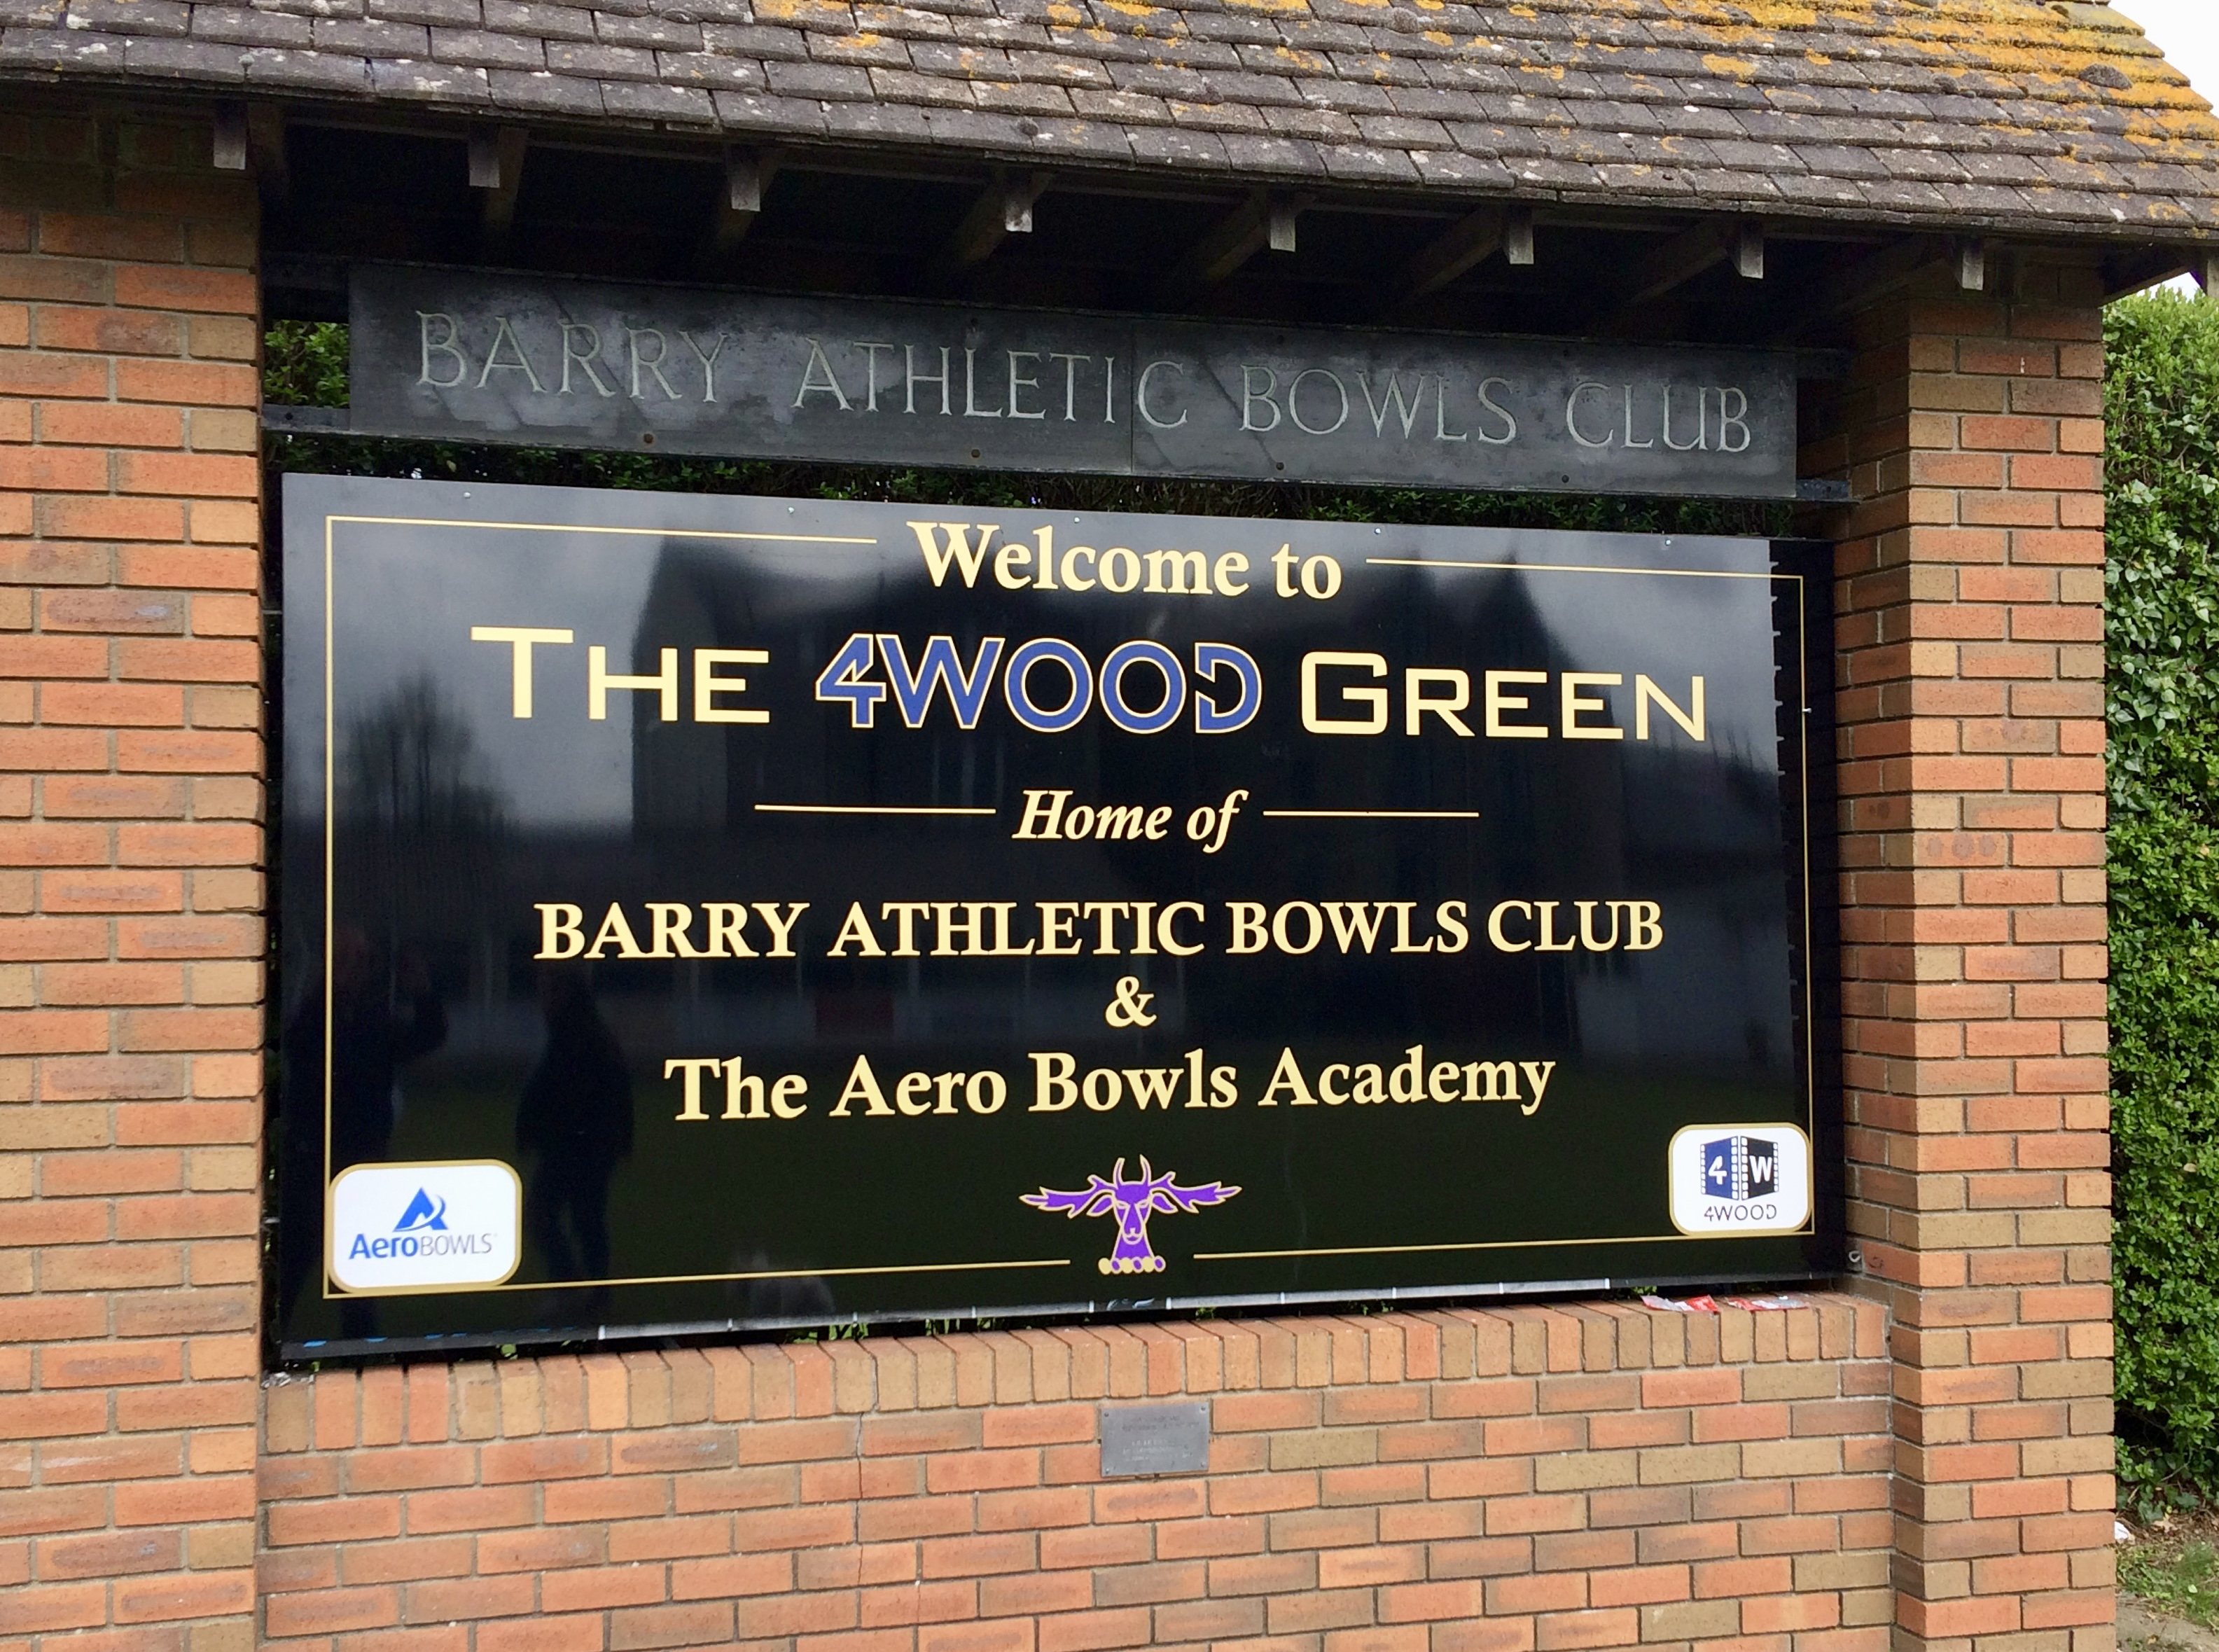 Barry Athletic Bowls Club Our Sponsors & Partners